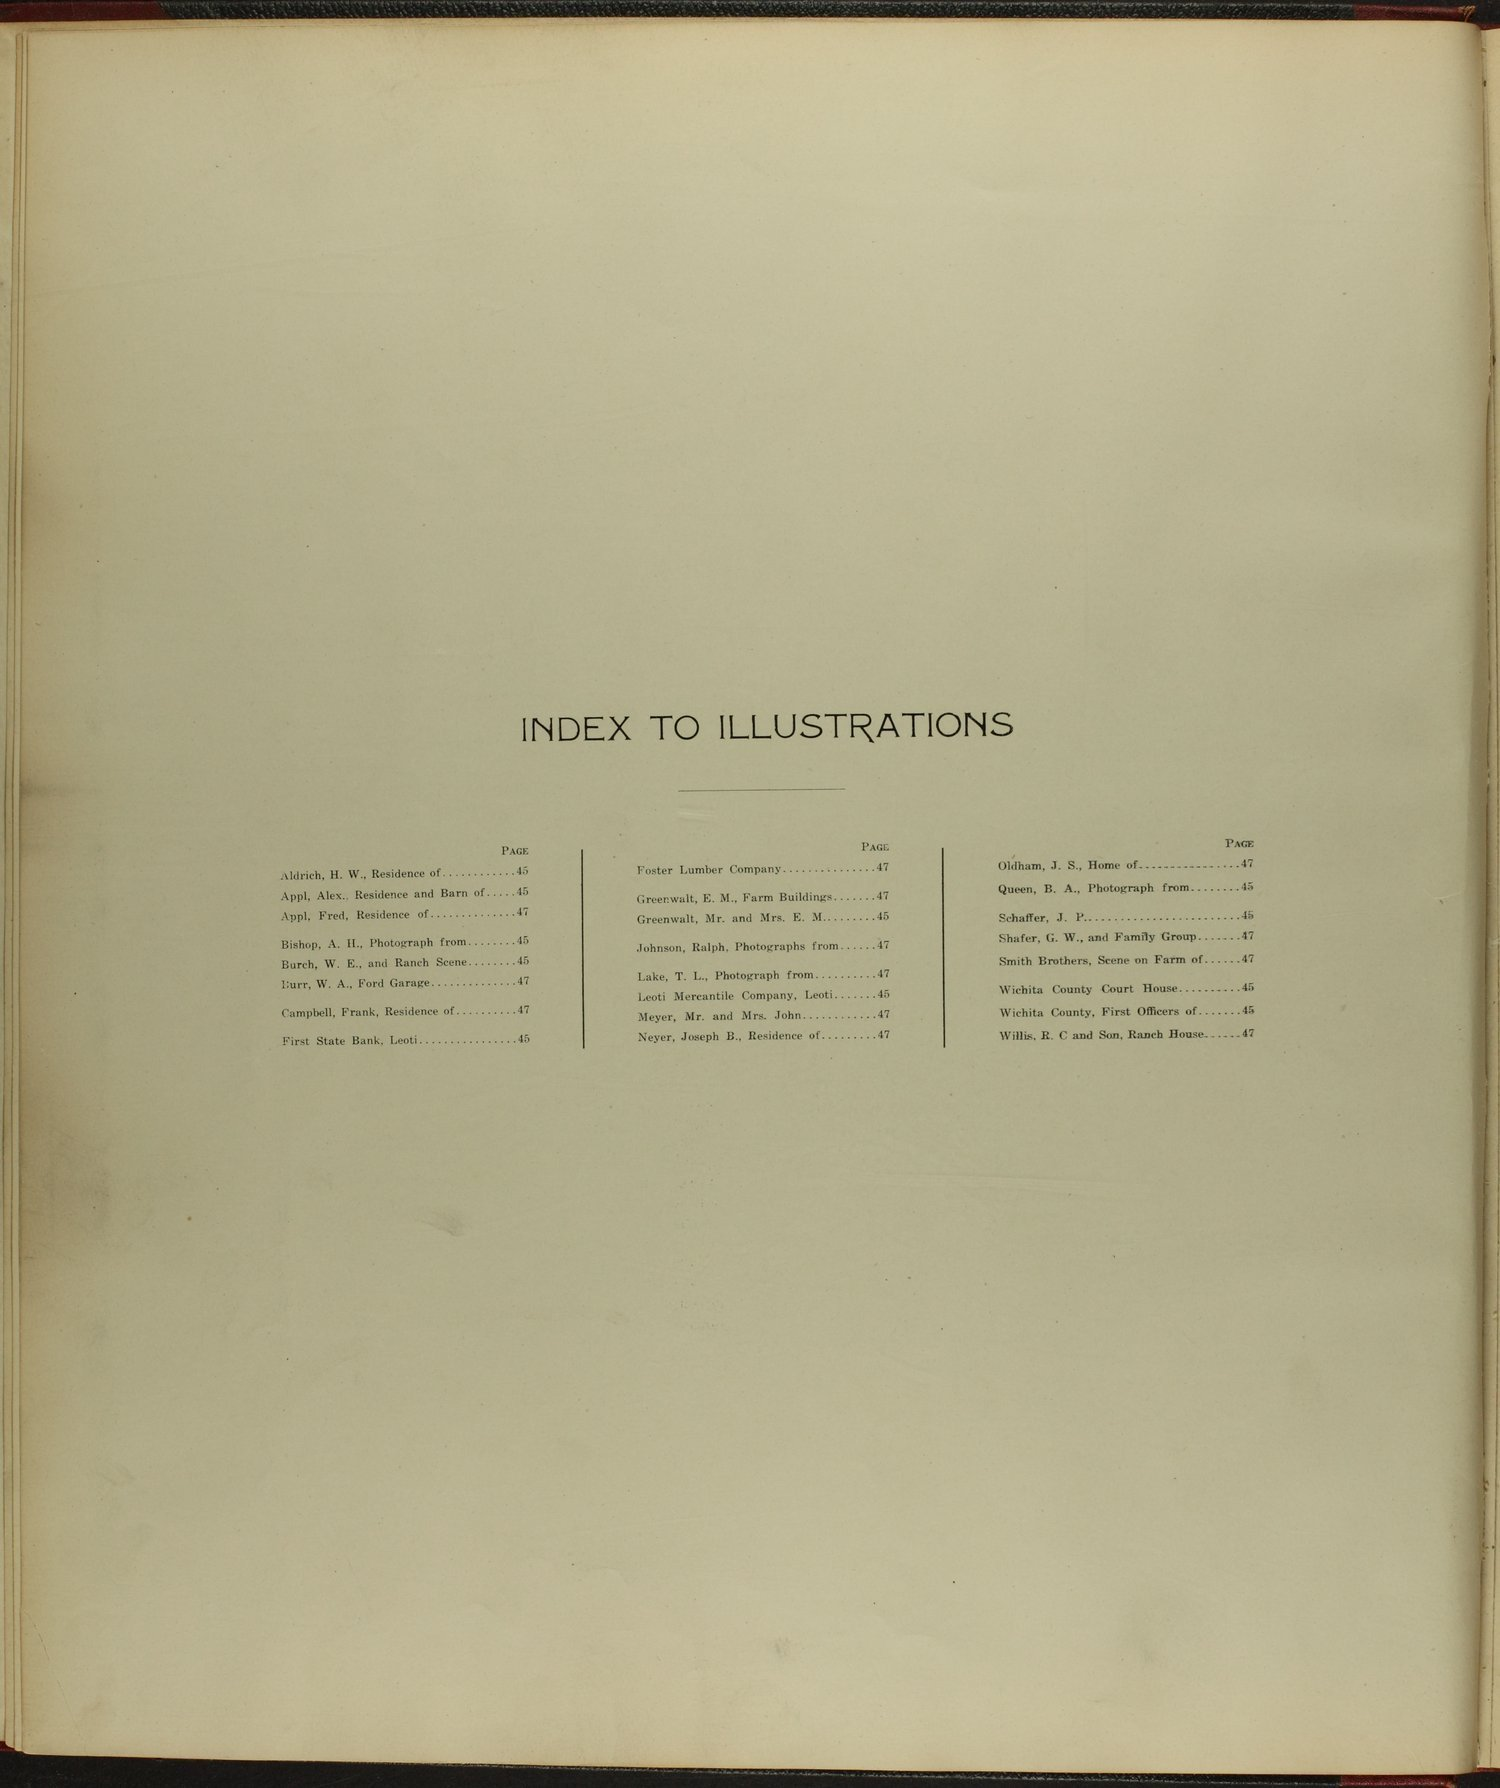 Standard atlas of Wichita County, Kansas - Index to Illustrations